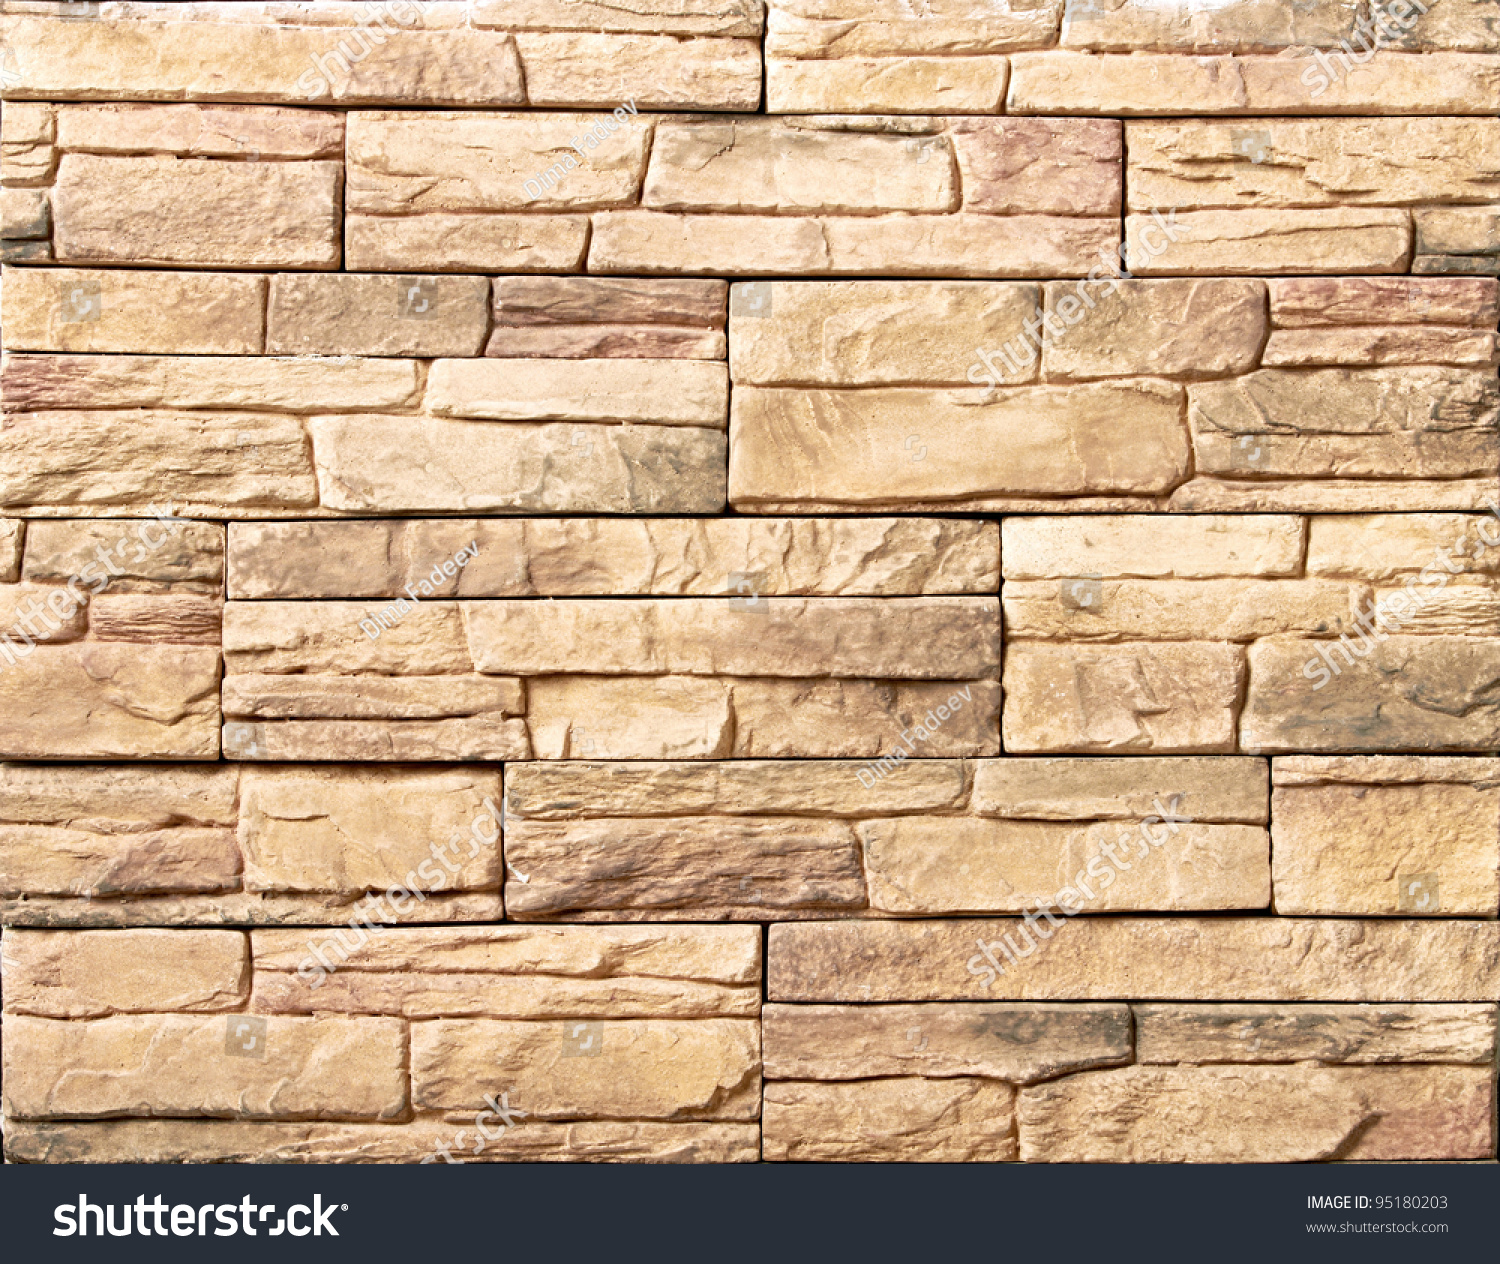 Brick wall design as mortar background texture Wall Design Mortar Background Texture Stock Photo 95180203